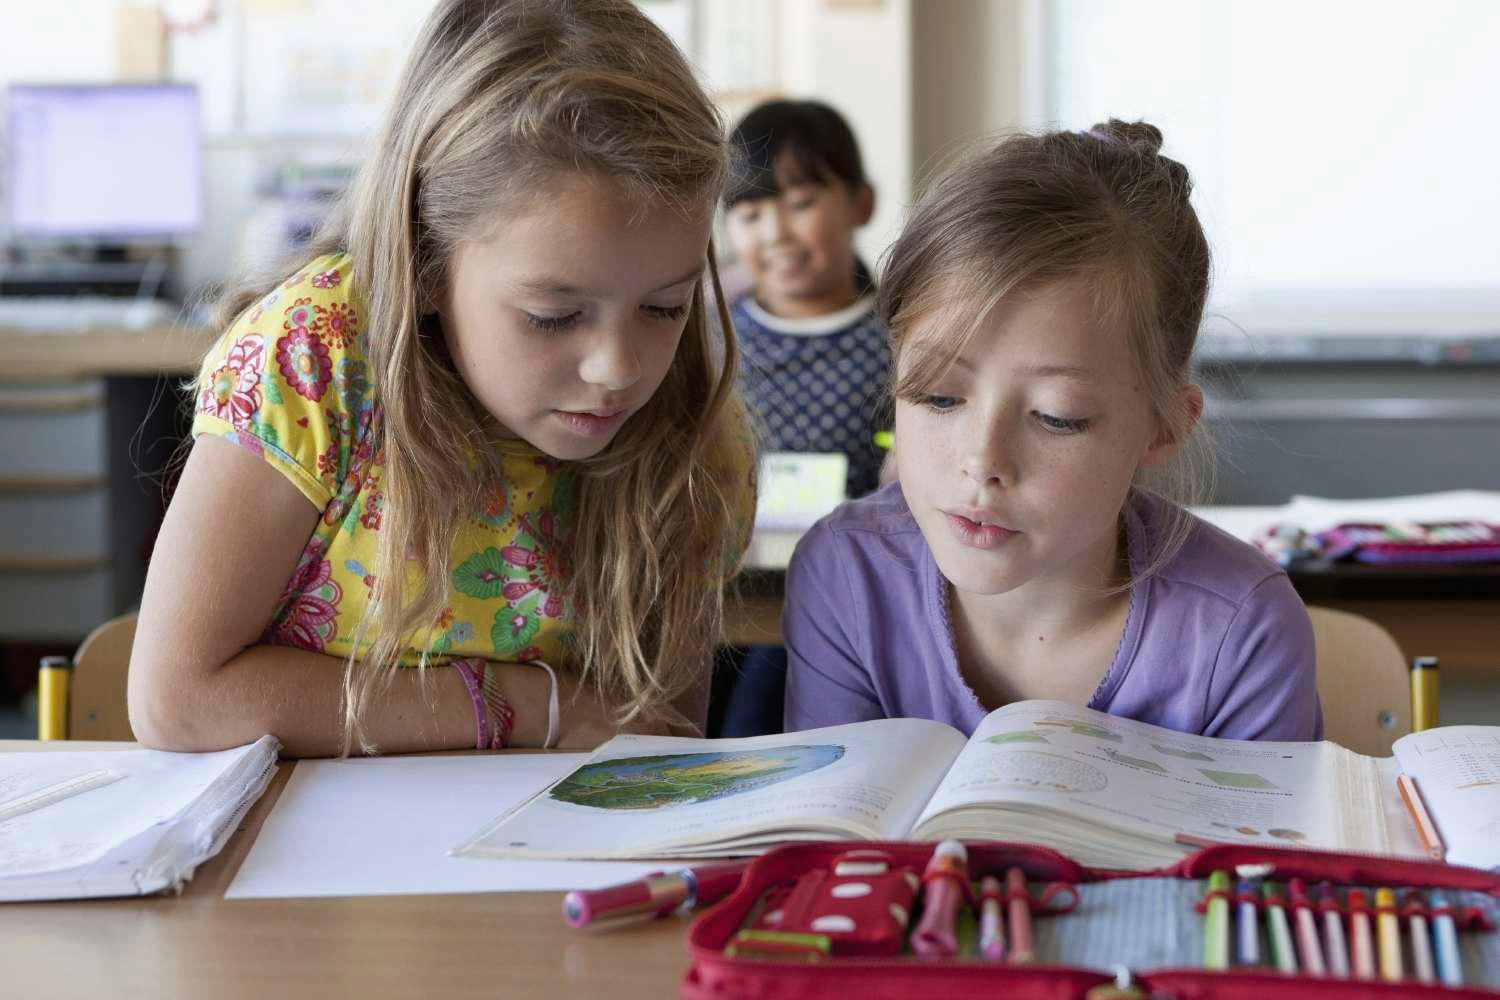 Two young female students reading a book together in a classroom